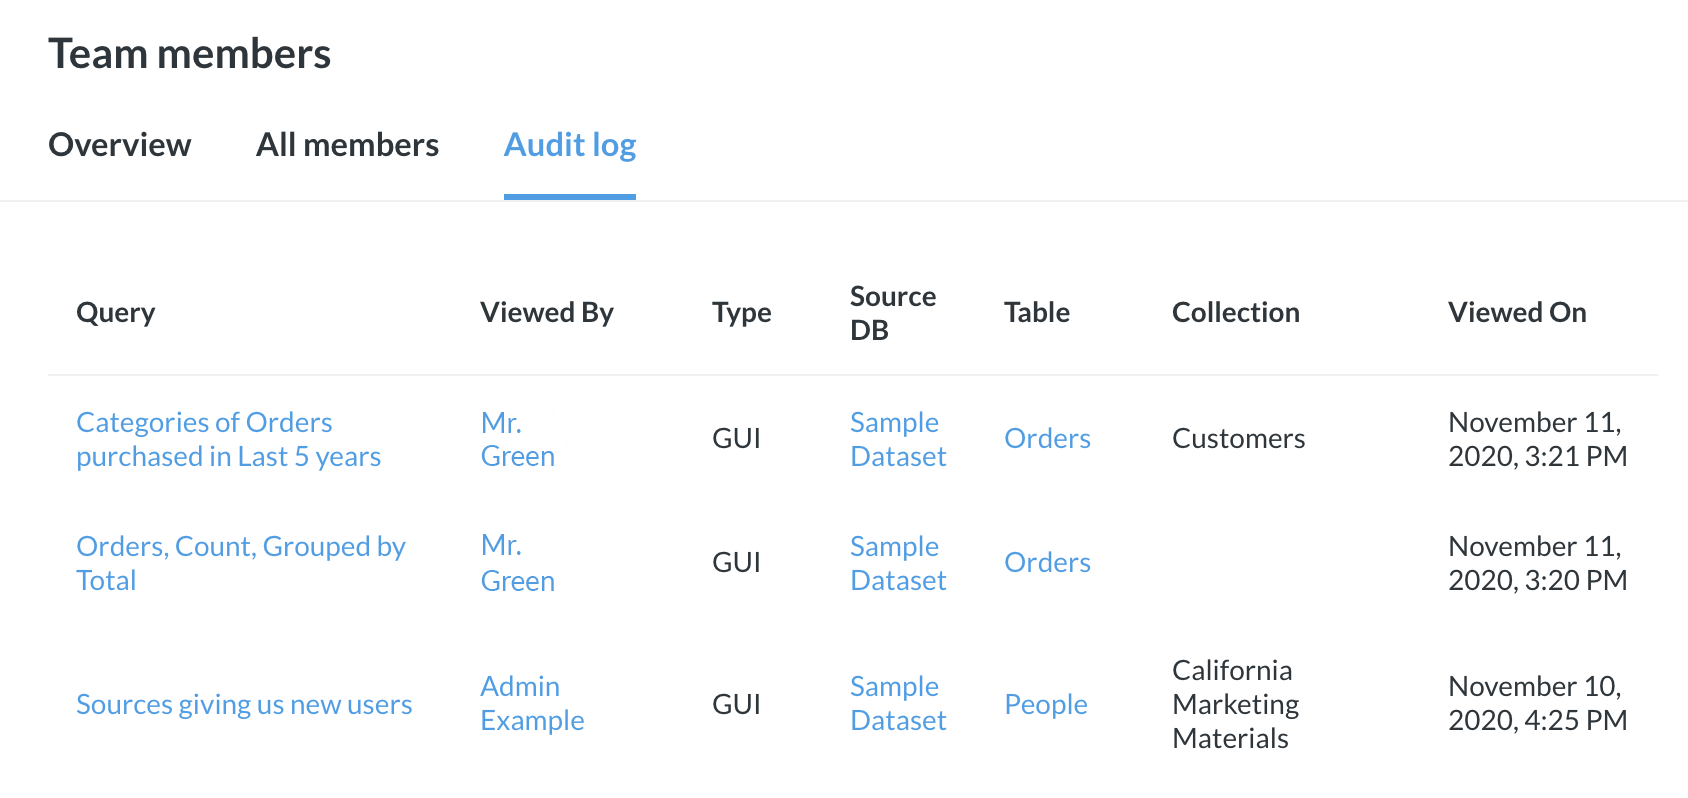 <em>Fig. 1.</em> The team members' <strong>audit logs</strong>, which lets admins see how people are using Metabase.